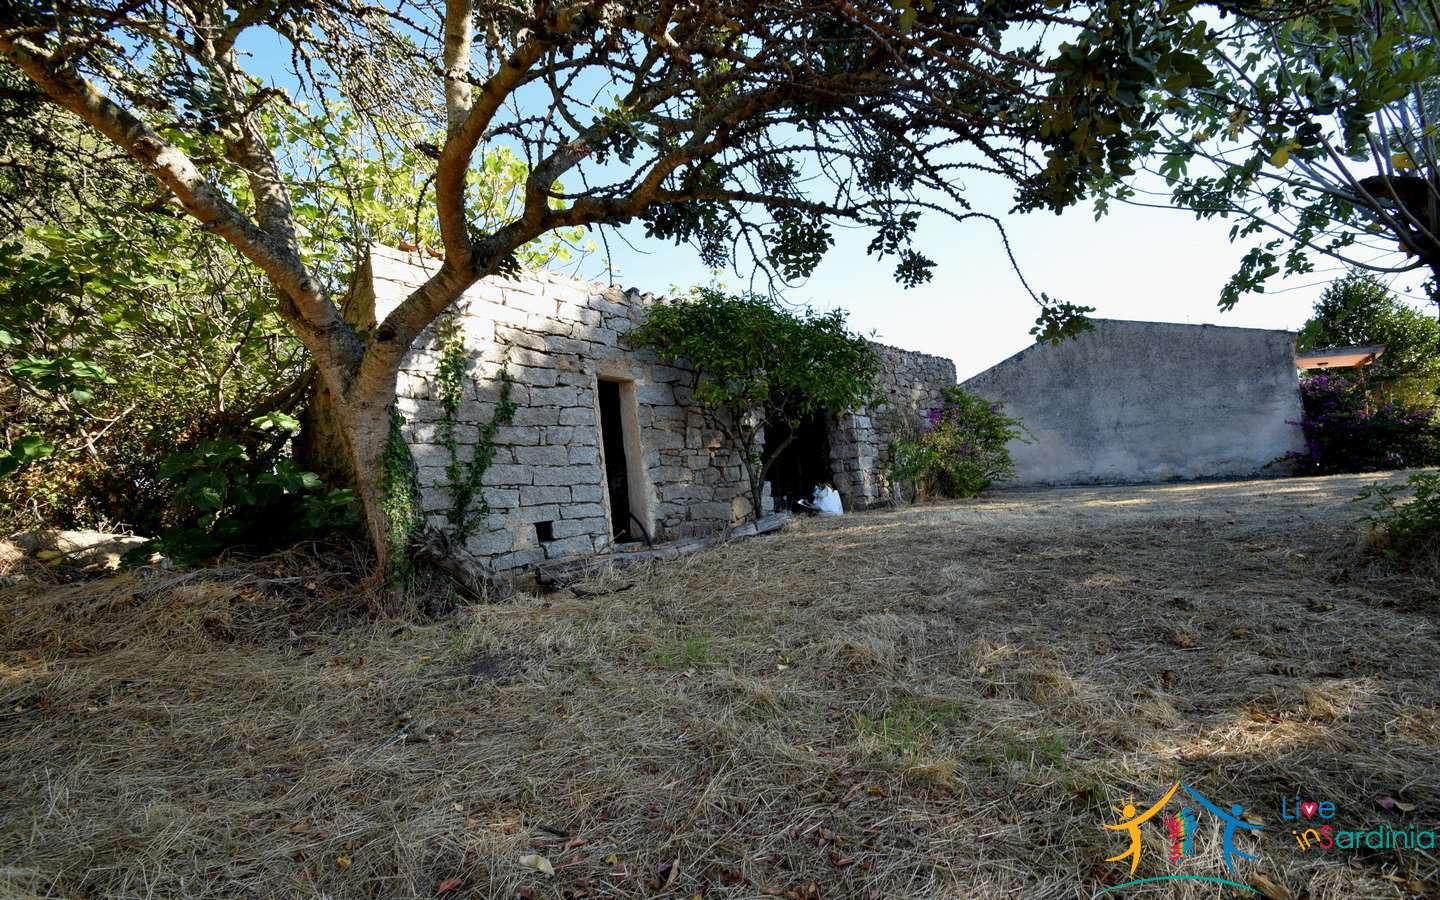 Semidetached Rural Home With 3000 M2 Orchard for Sale in Telti, North Sardinia